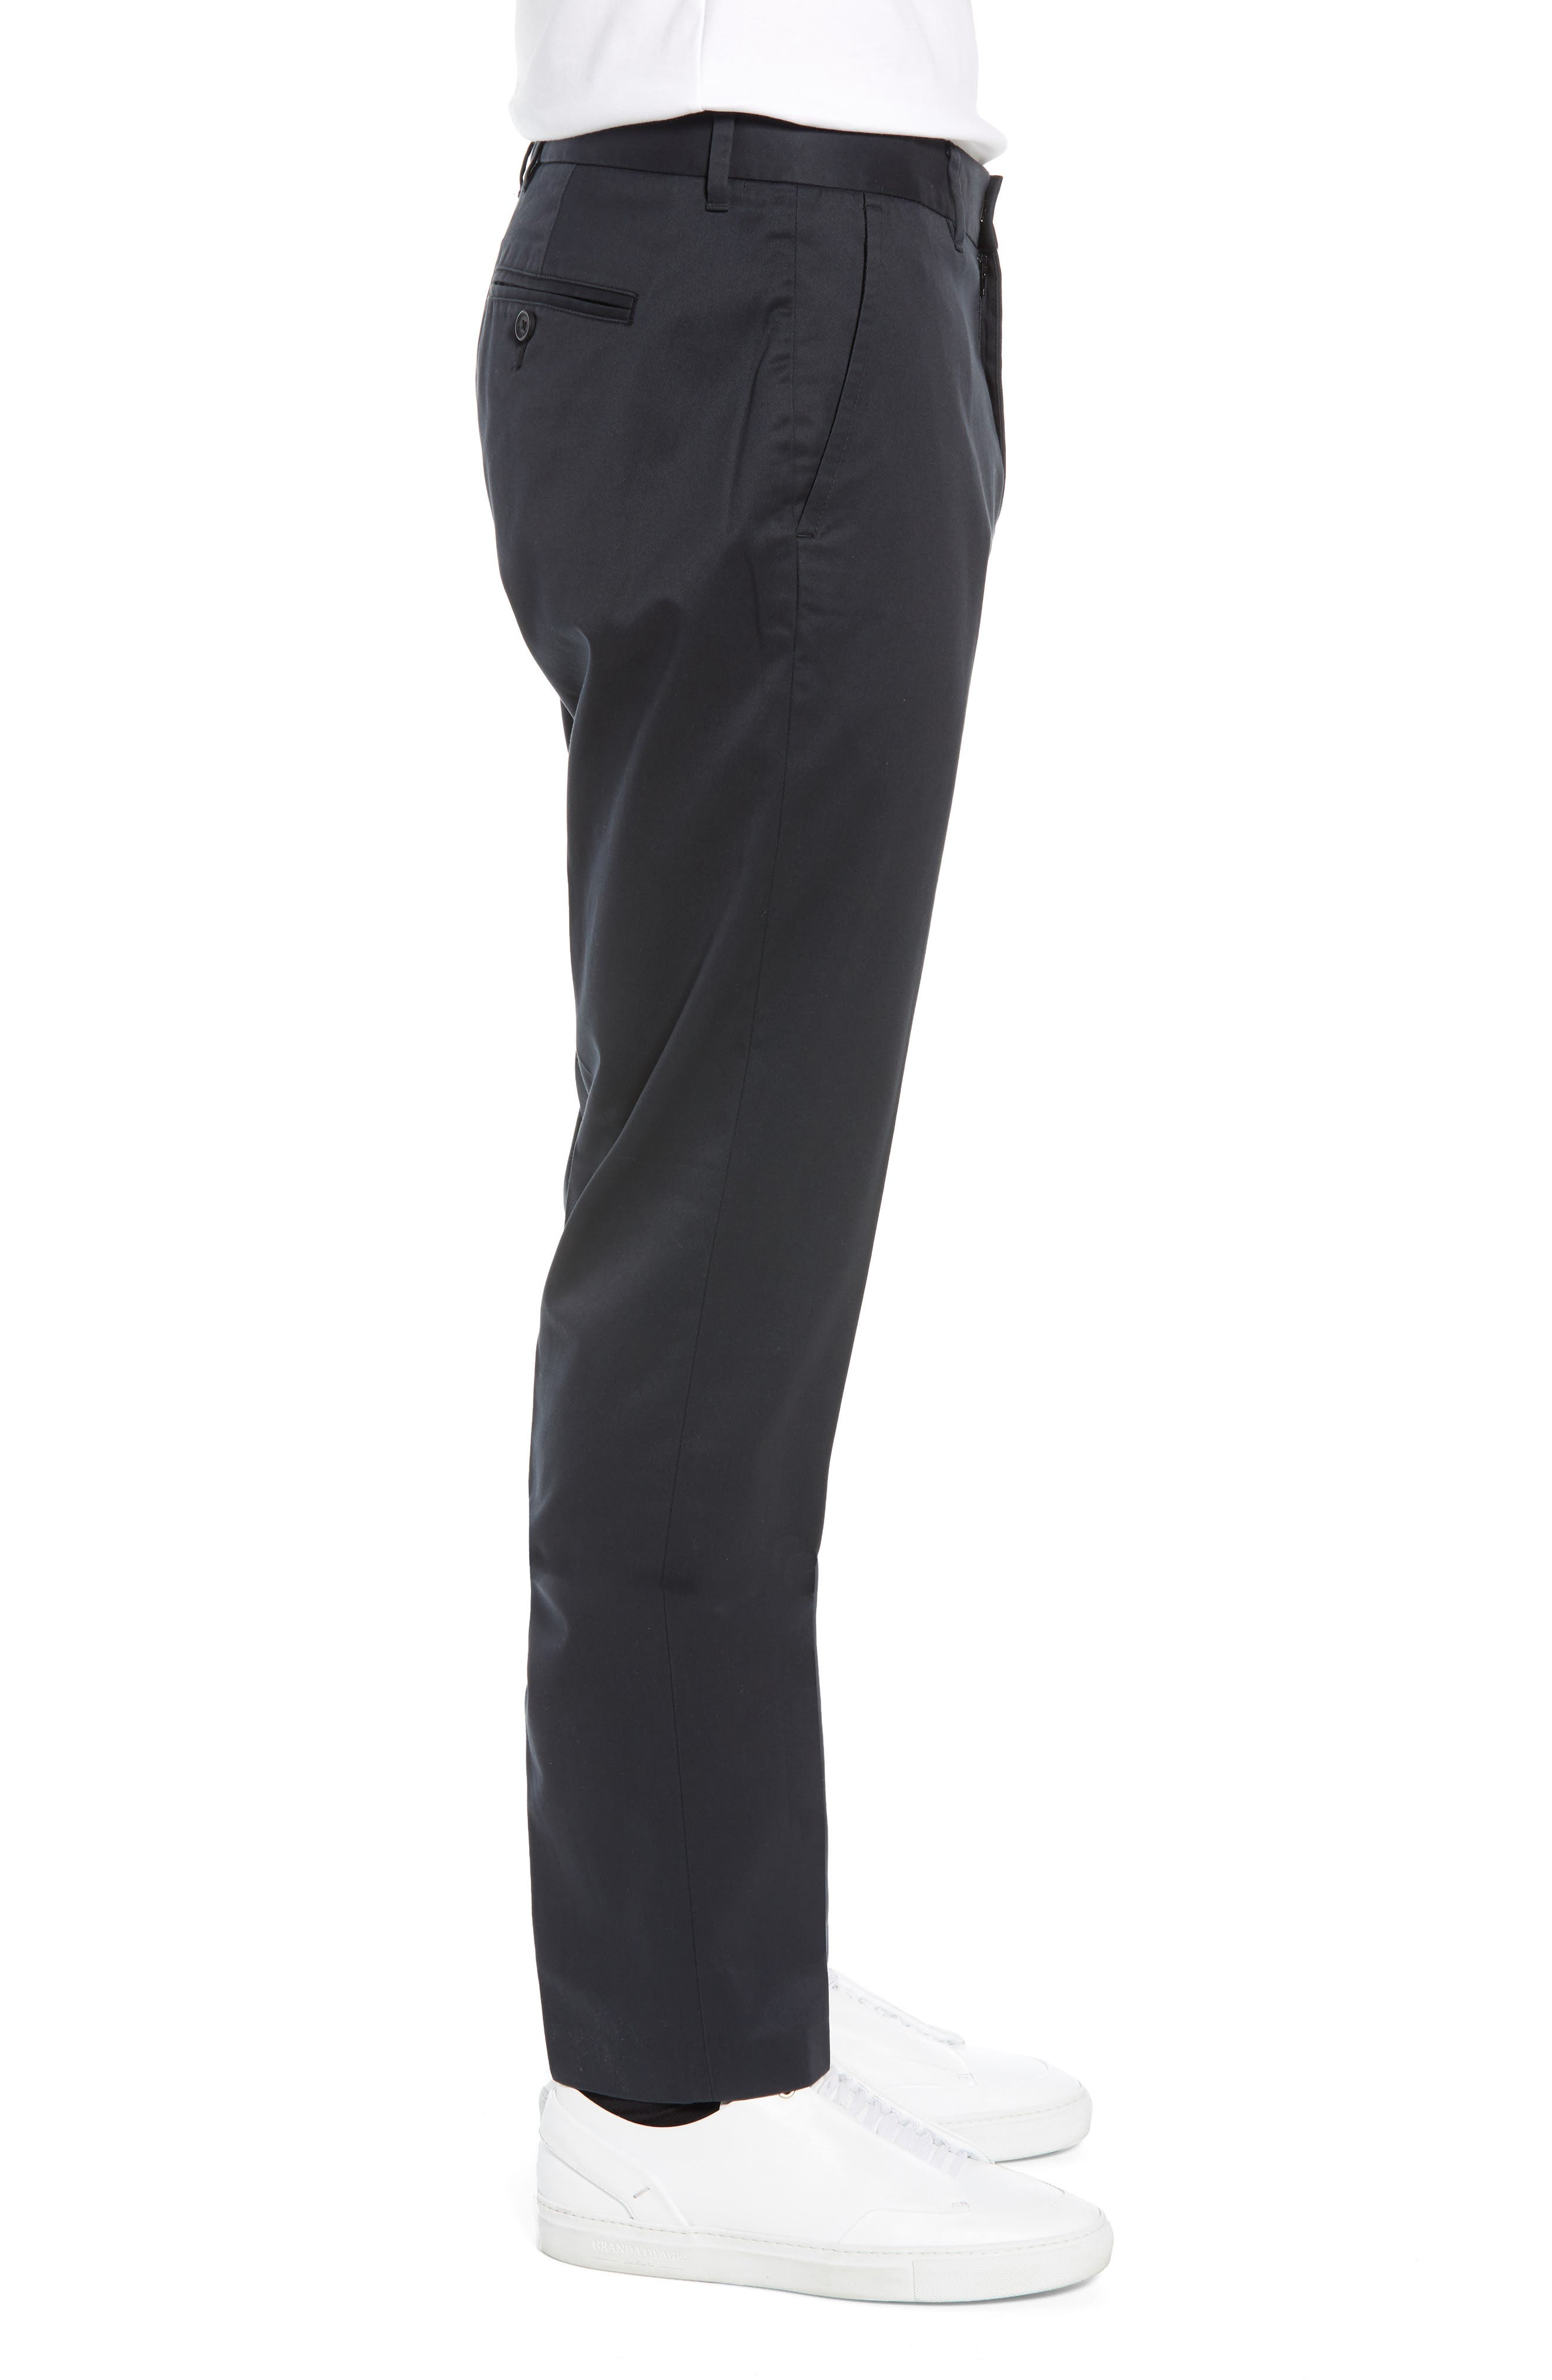 BONOBOS, Weekday Warrior Athletic Fit Stretch Dress Pants, Alternate thumbnail 3, color, TUESDAY BLACK